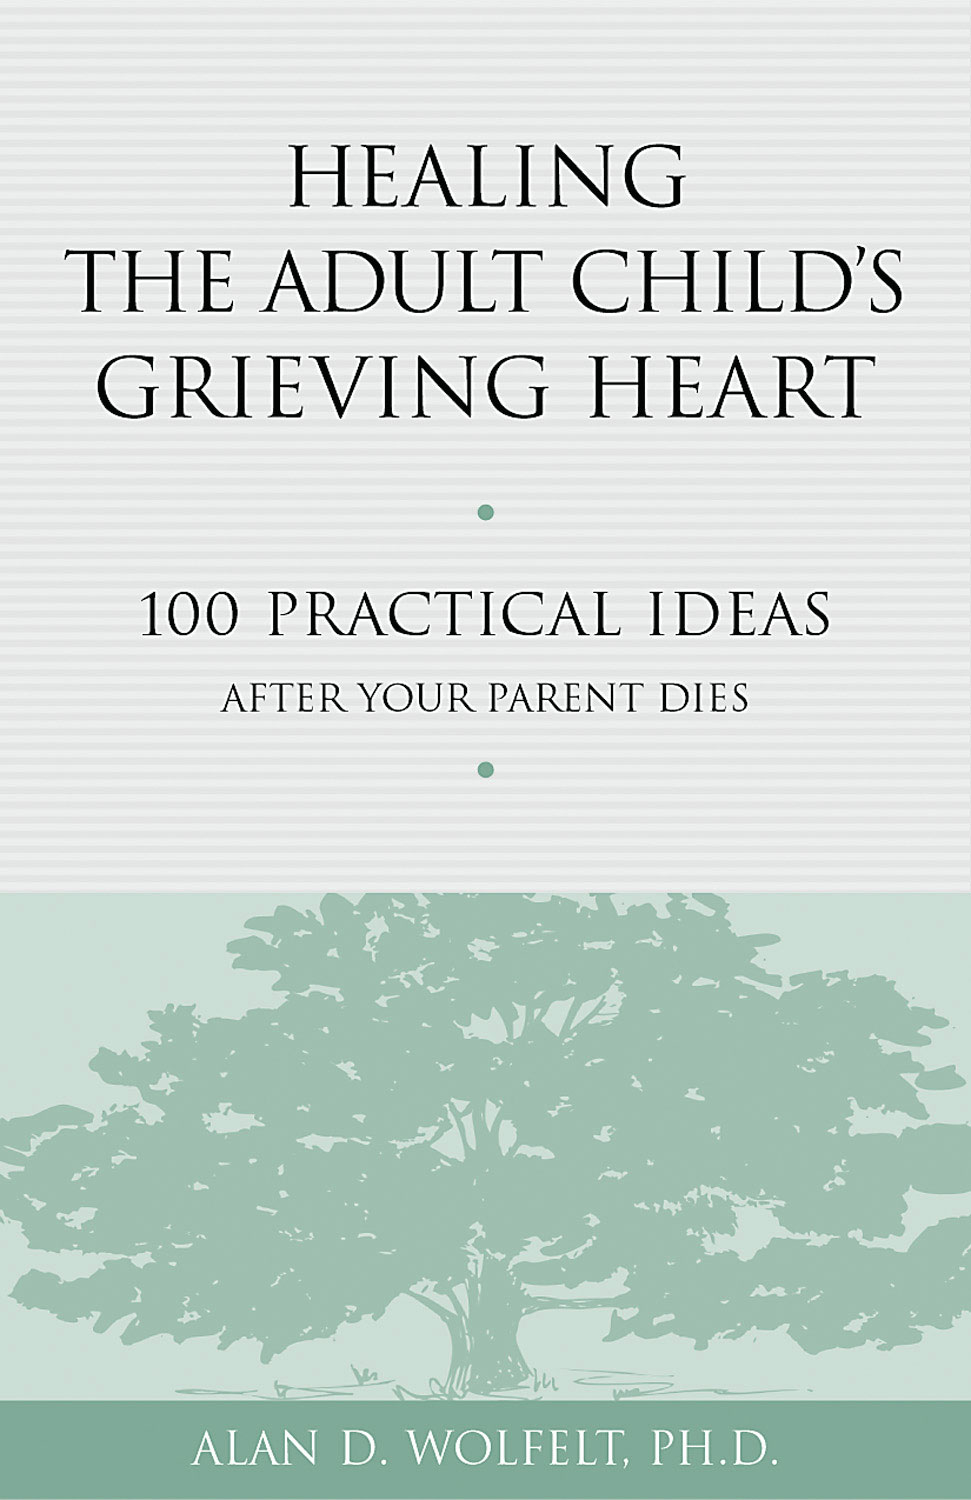 Healing the Adult Child's Grieving Heart By: Alan D. Wolfelt, PhD